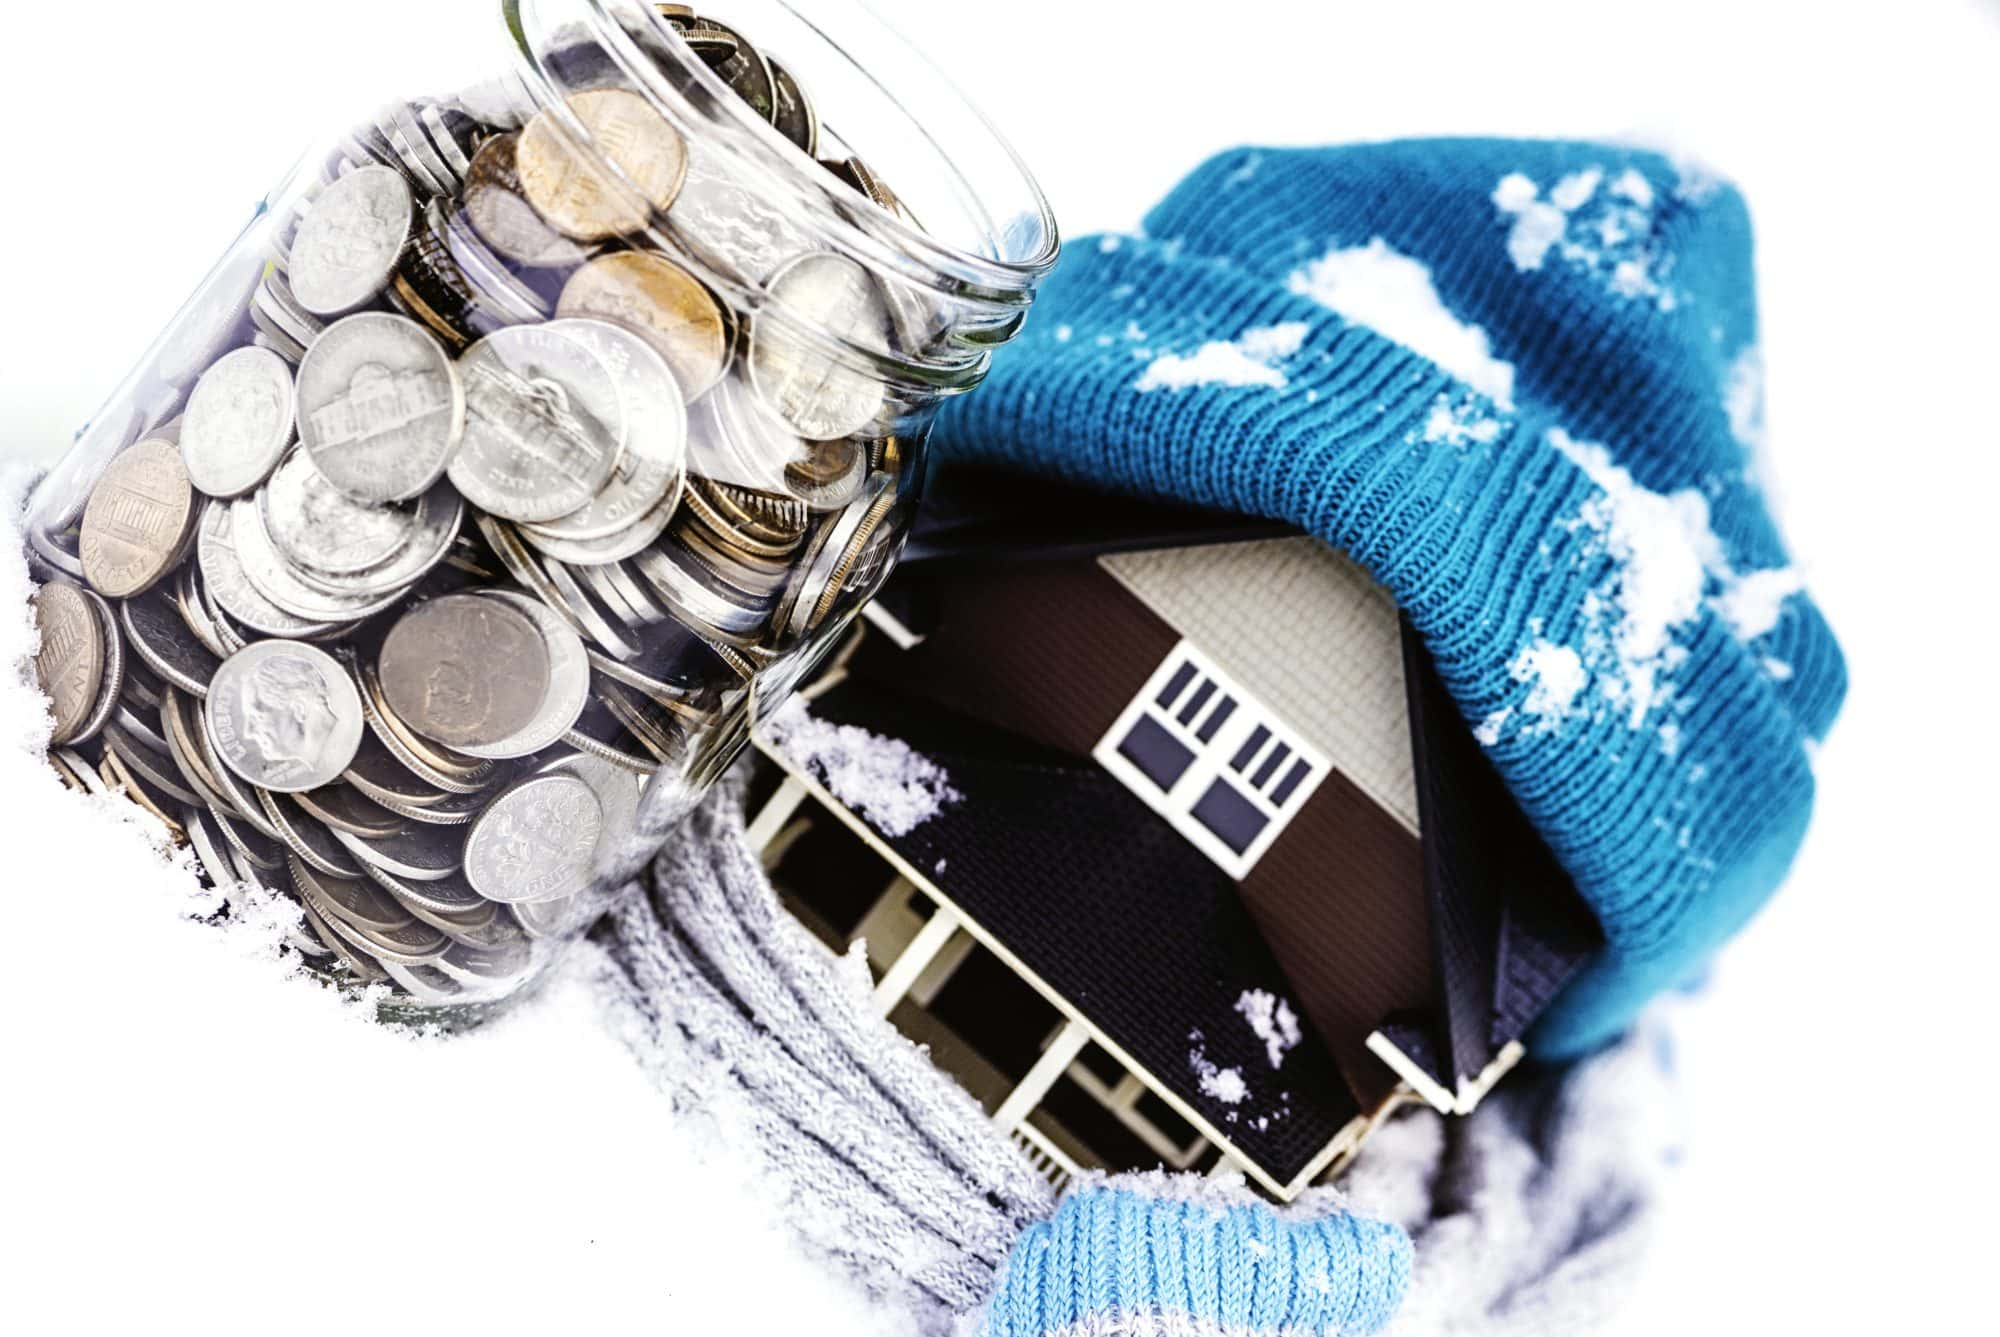 House-bundled-in-scarf-and-hat-next-to-jar-of-change-.jpg